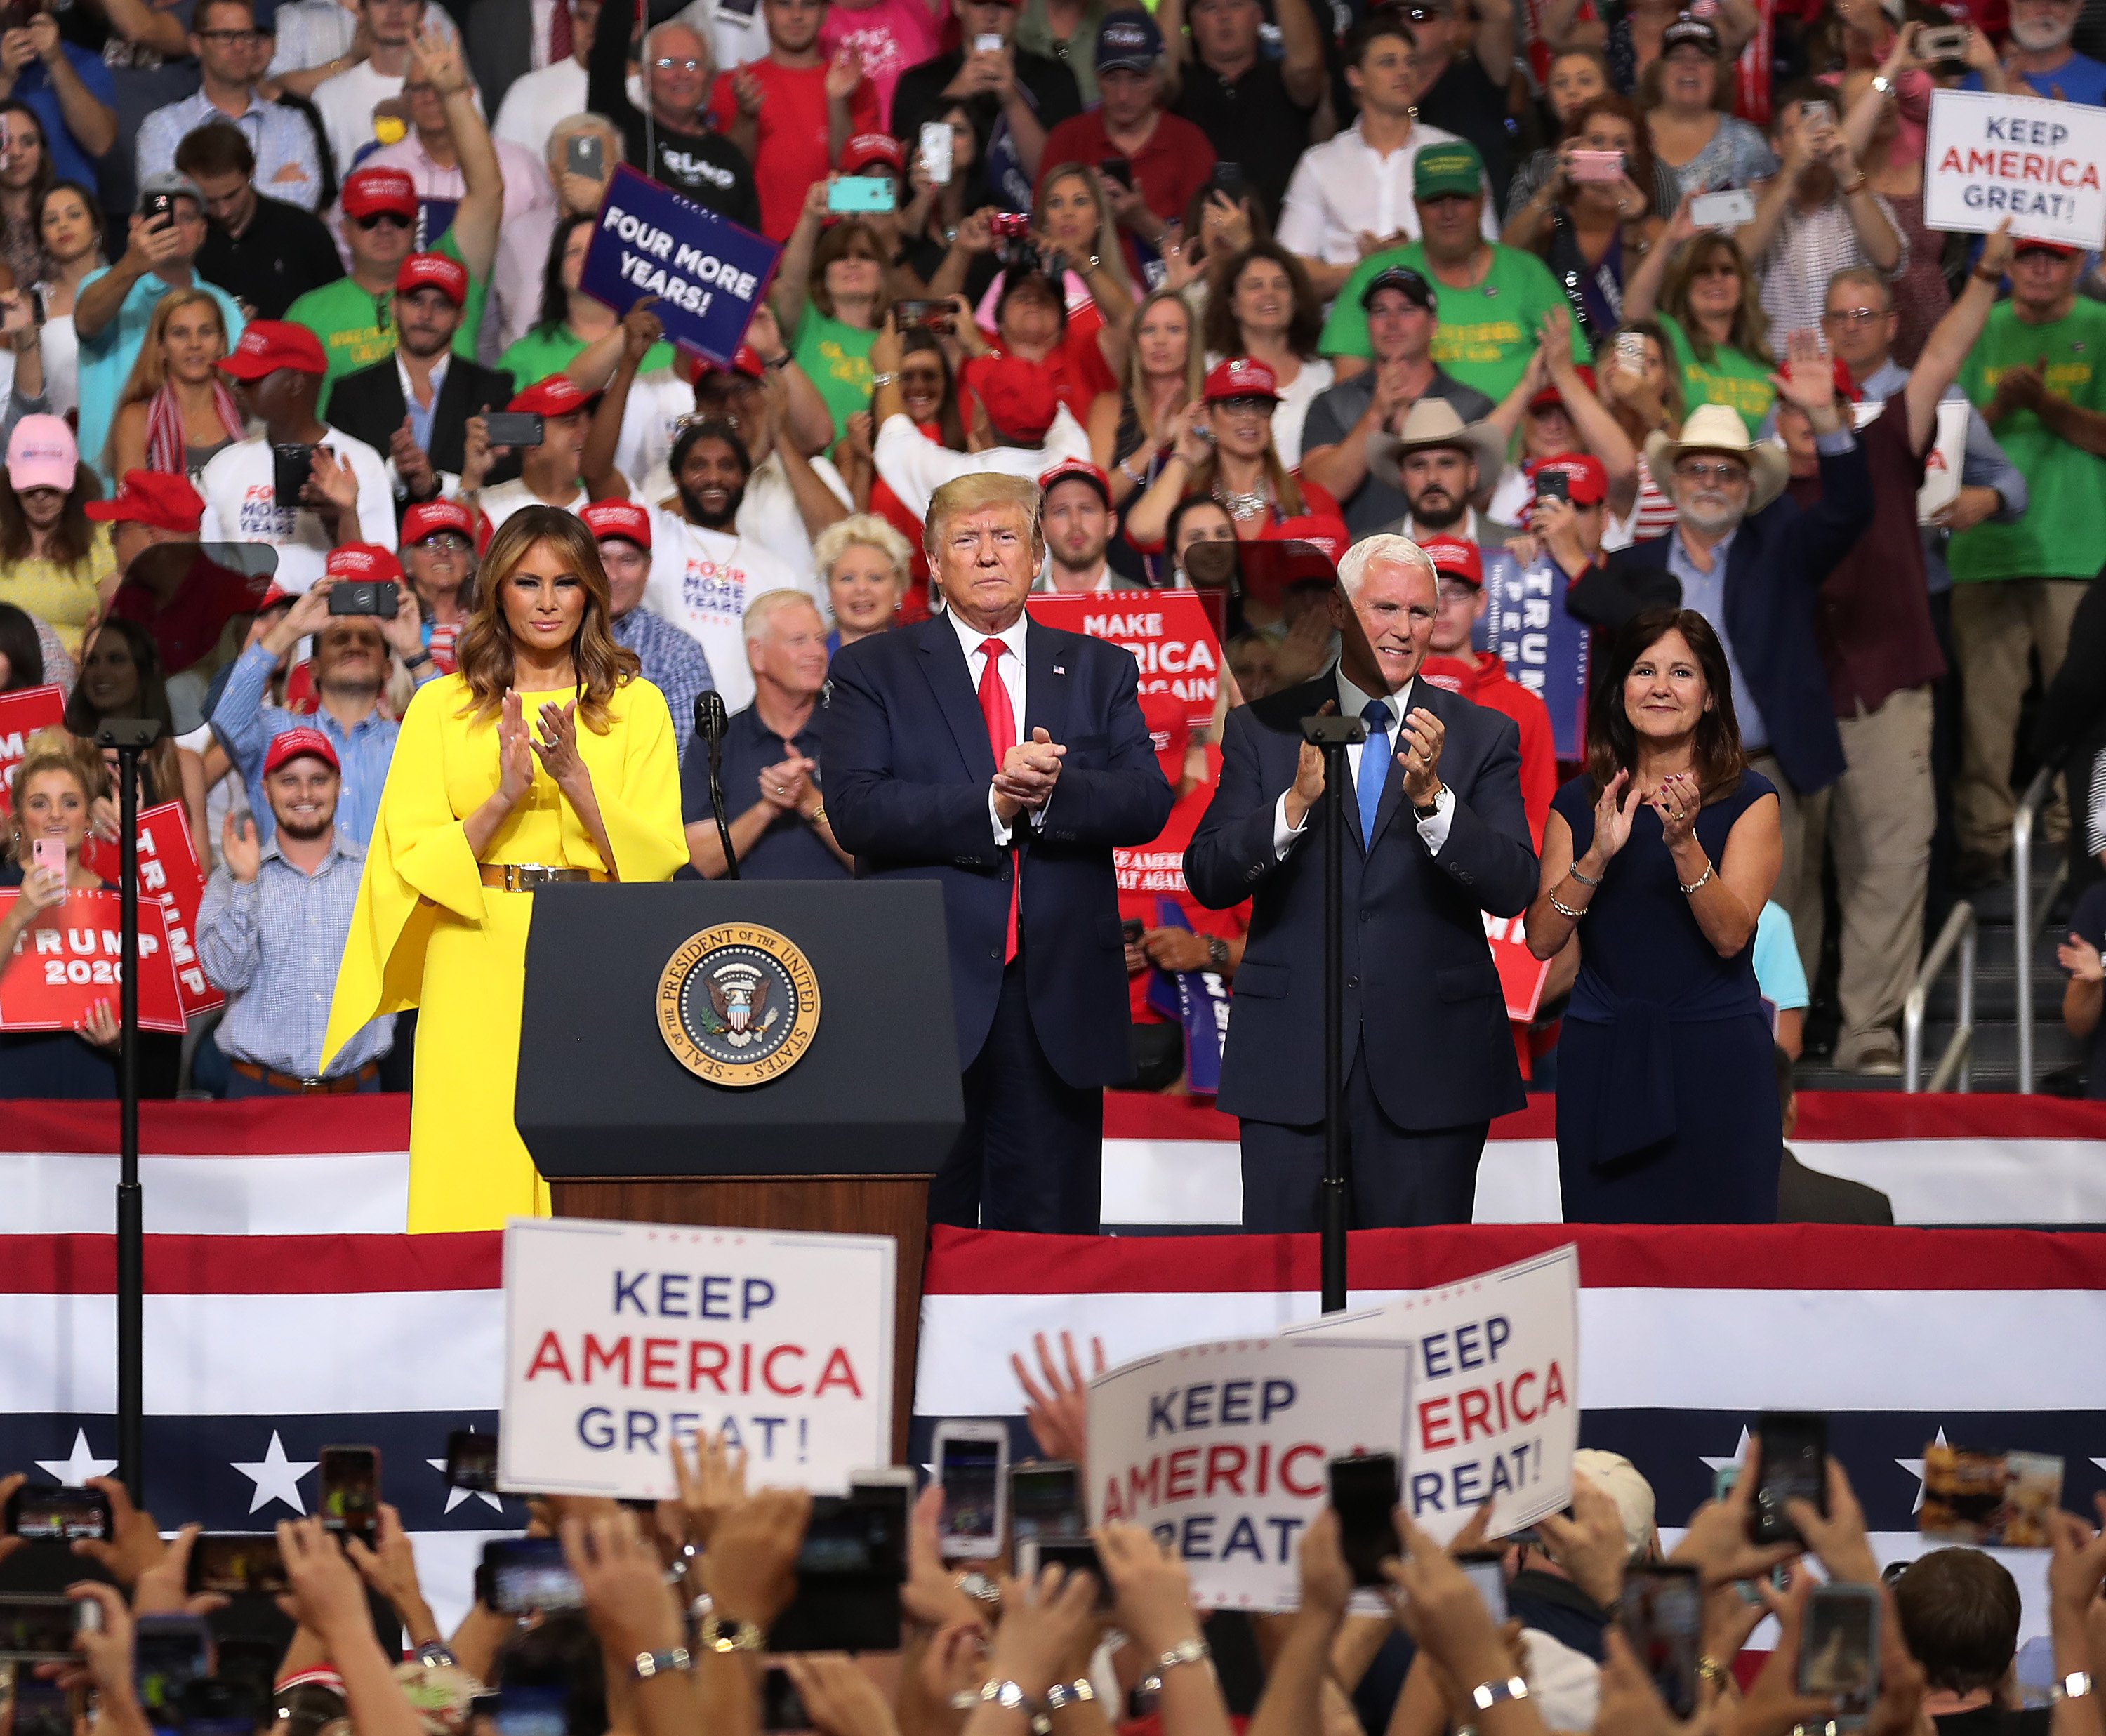 Donald Trump, Melania Trump, Mike Pence and his wife, Karen Pence, at the Amway Center in Orlando, Florida | Photo: Getty Images